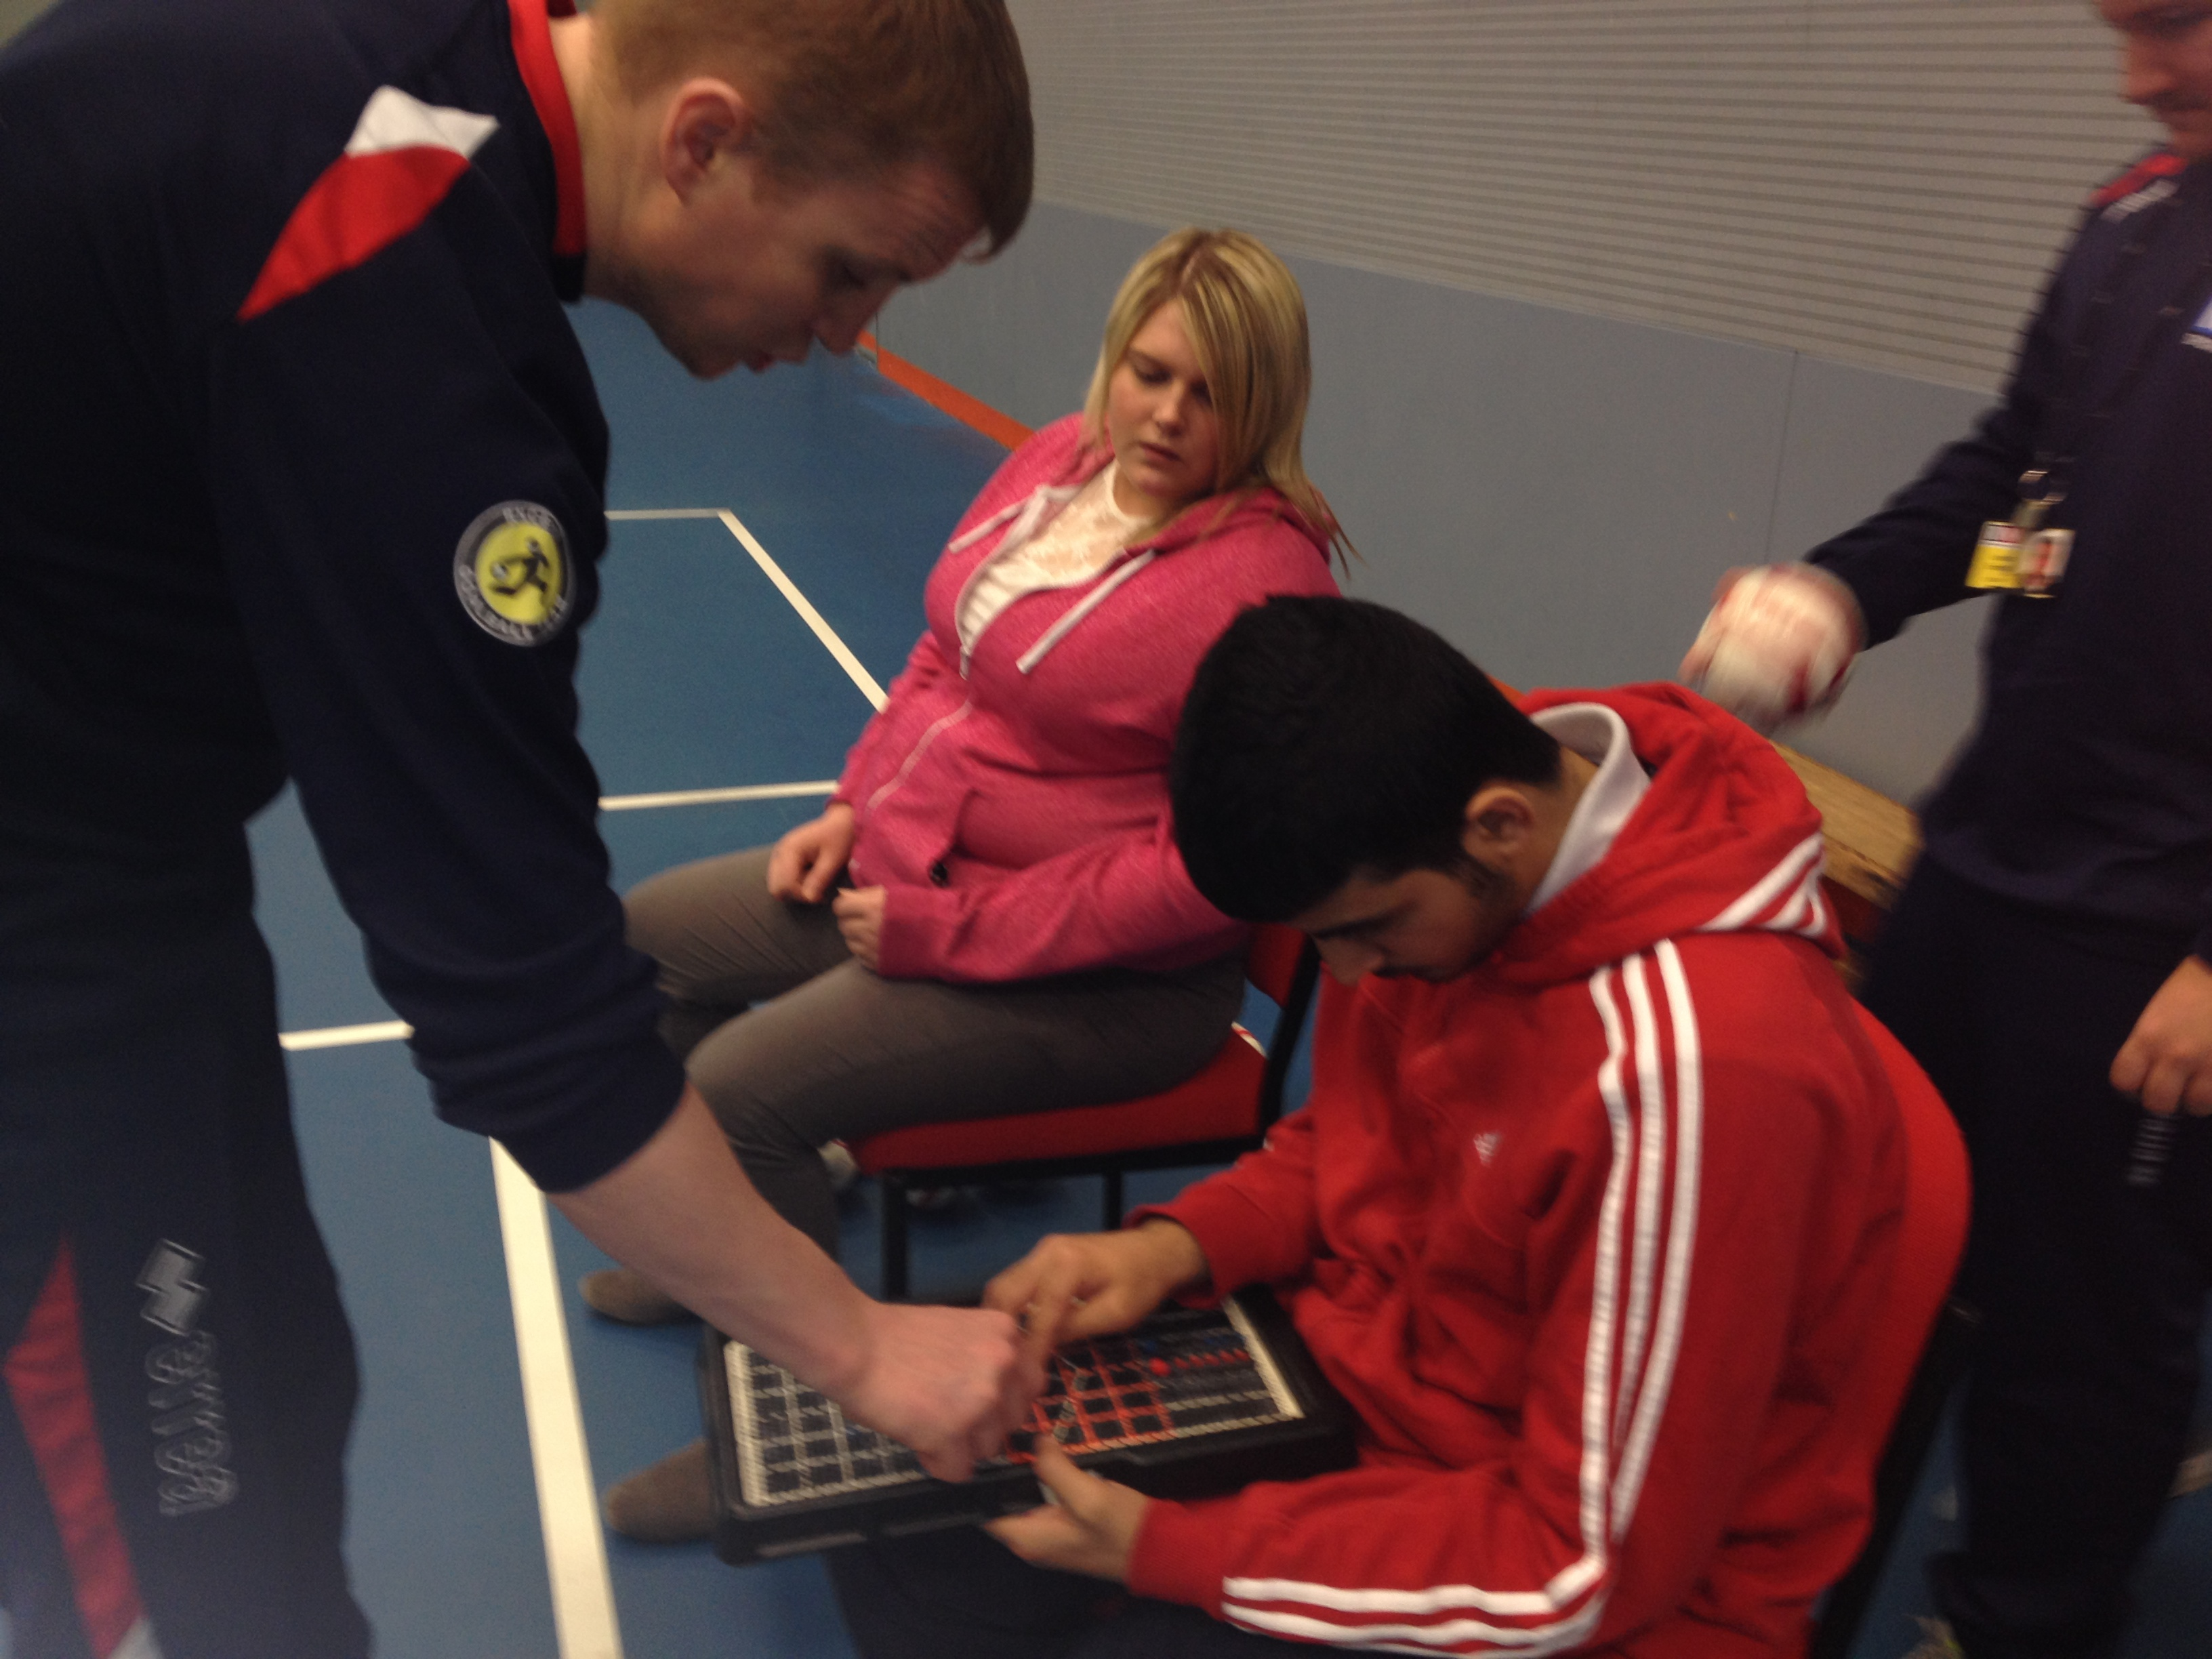 a male boccia player is plotting on the tactile map, a male teacher helps and a female player looks on